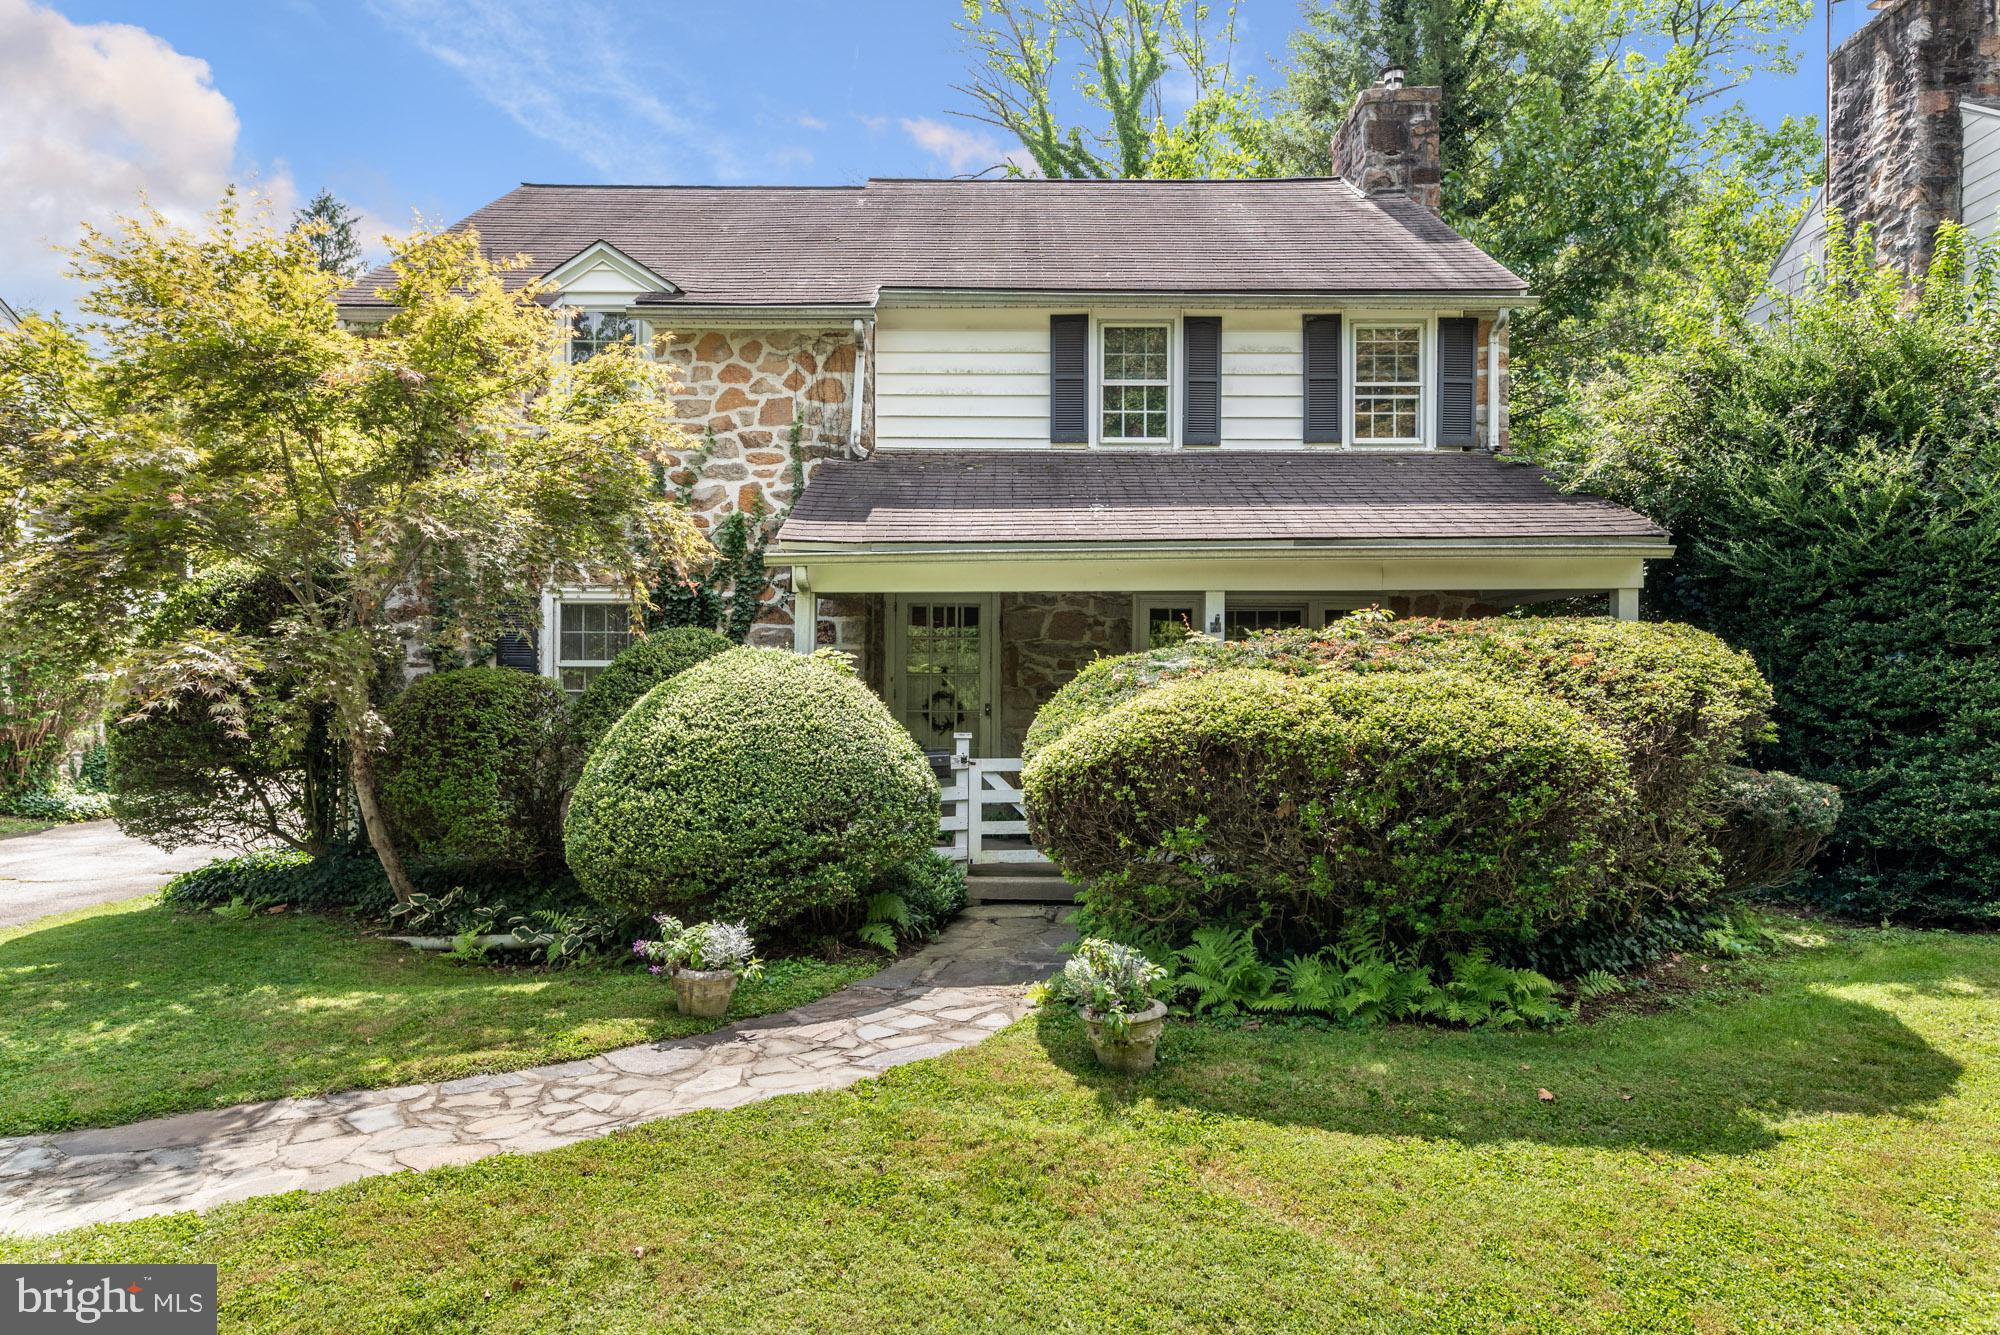 3-Bedroom House In Haverford